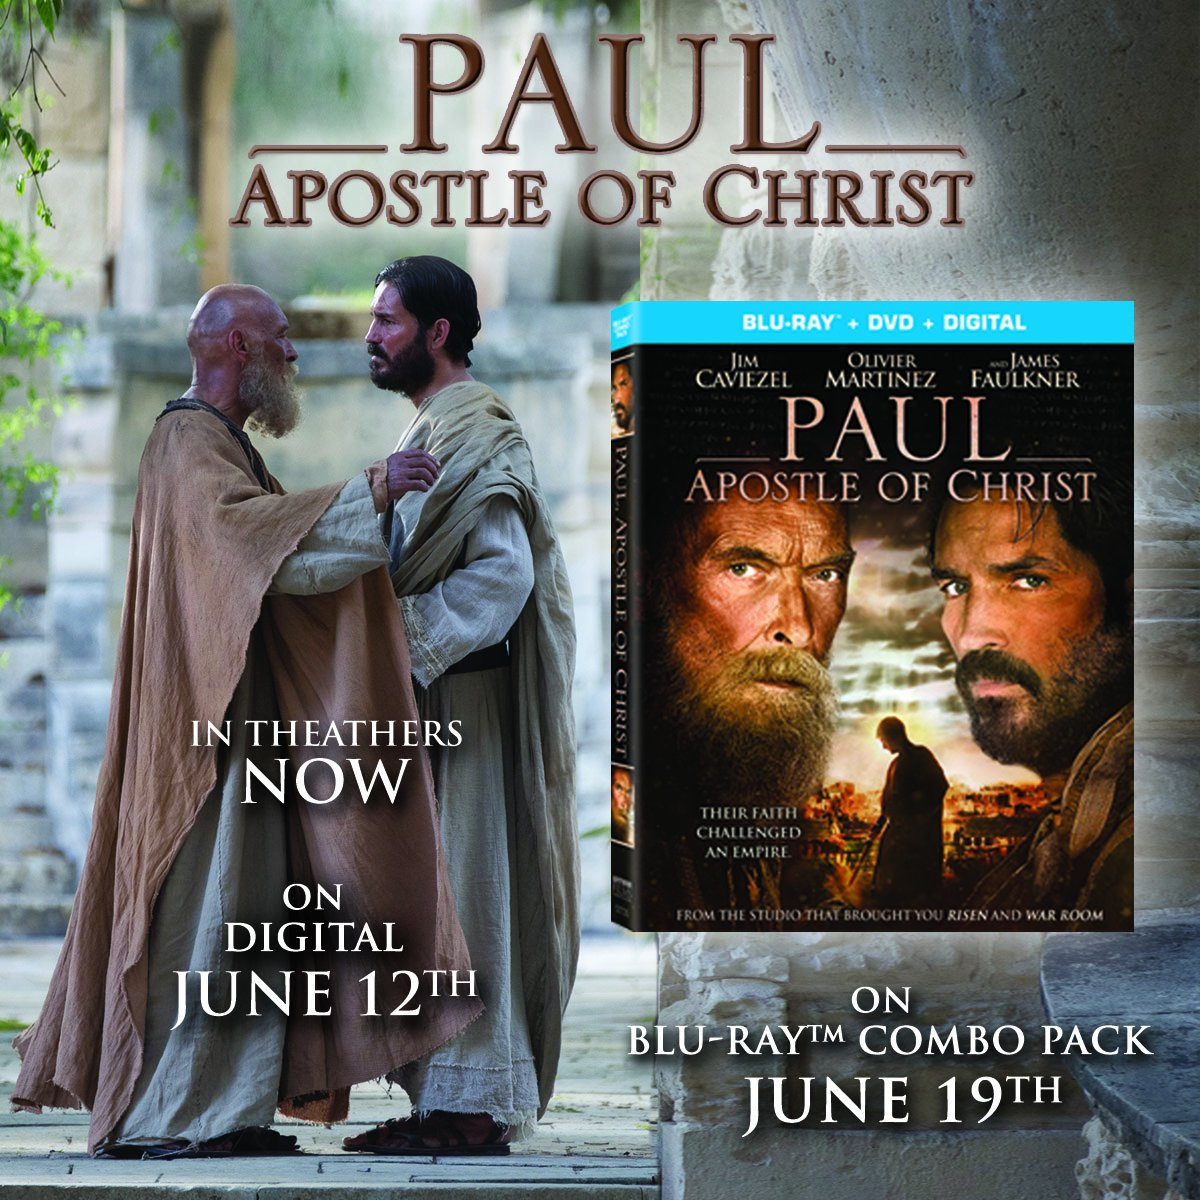 apostle paul and the good news Verses 1-7 establish paul's authority as an apostle and declare the basis for paul's ministry to the saints at rome on this foundation of paul's creed and his calling, paul will establish yet another basis for his ministry to the roman saints.